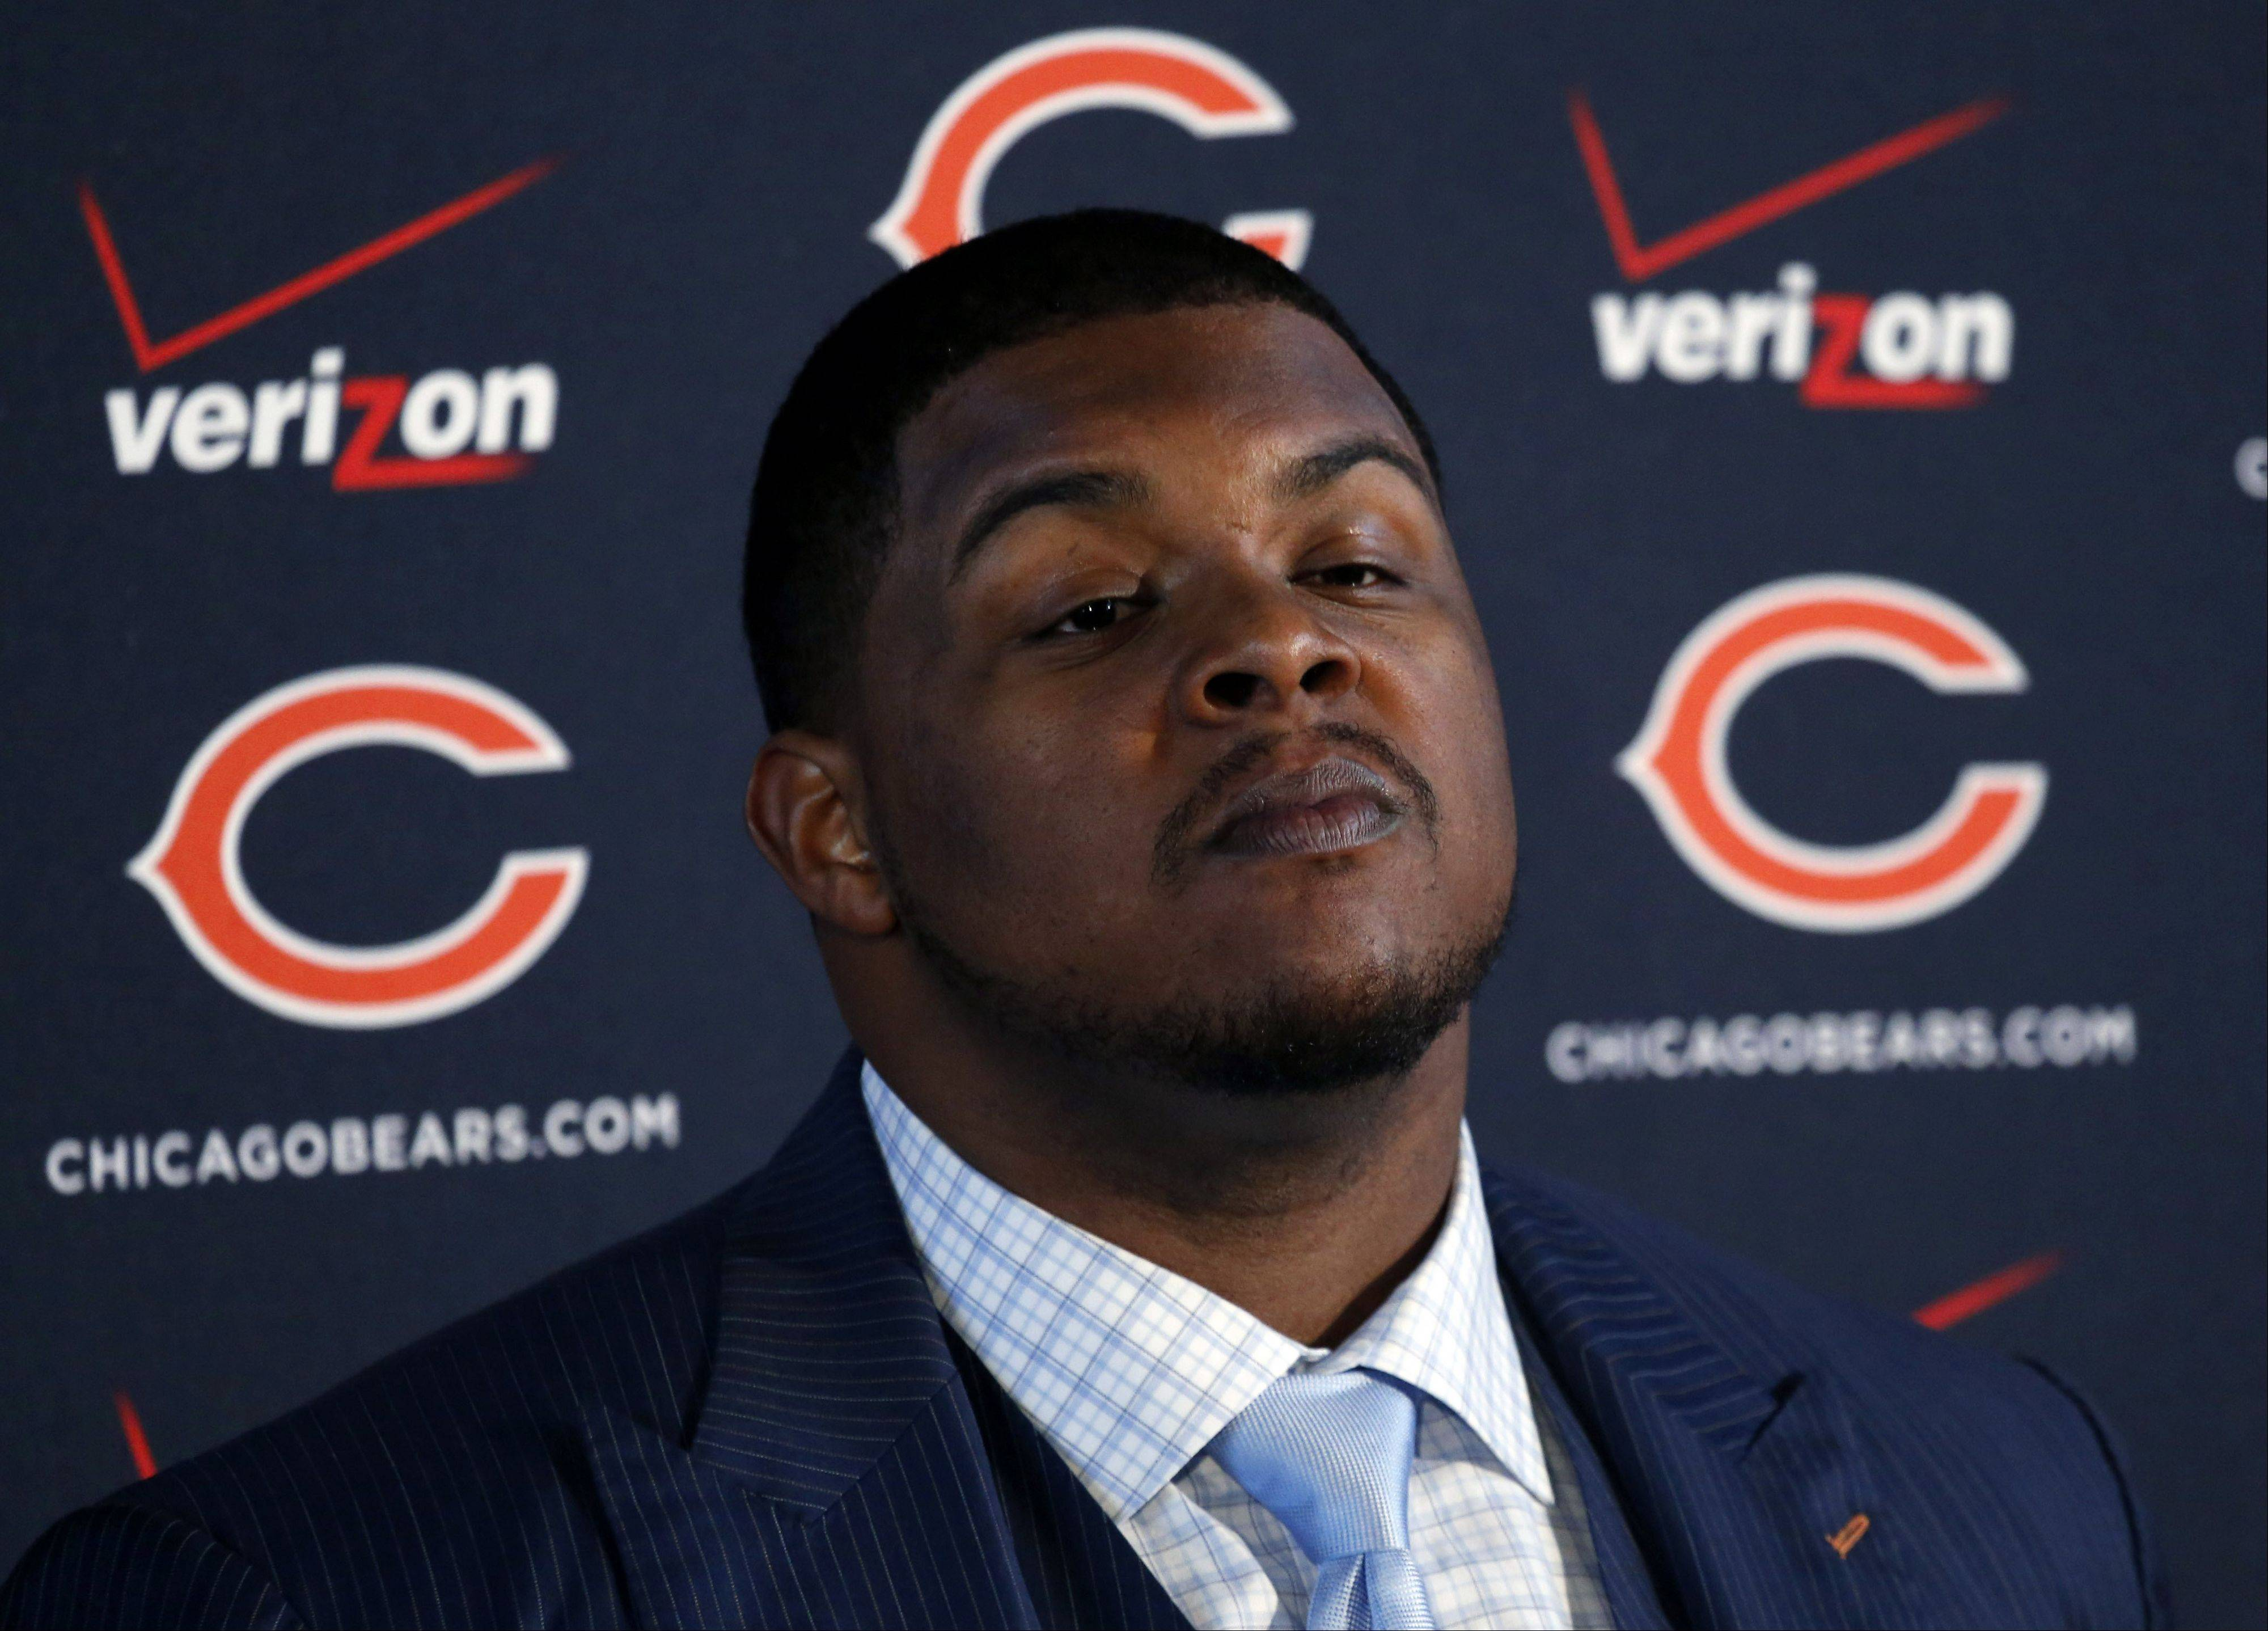 Left tackle Jermon Bushrod listens to a question after Chicago Bears general manager Phil Emery announced the signing of Bushrod during an NFL football news conference, Wednesday, March 13, 2013, in Lake Forest, Ill. The Bears addressed a huge hole on the offensive line by agreeing to a five-year contract Bushrod and filled another need by signing versatile tight end Martellus Bennett on Tuesday.